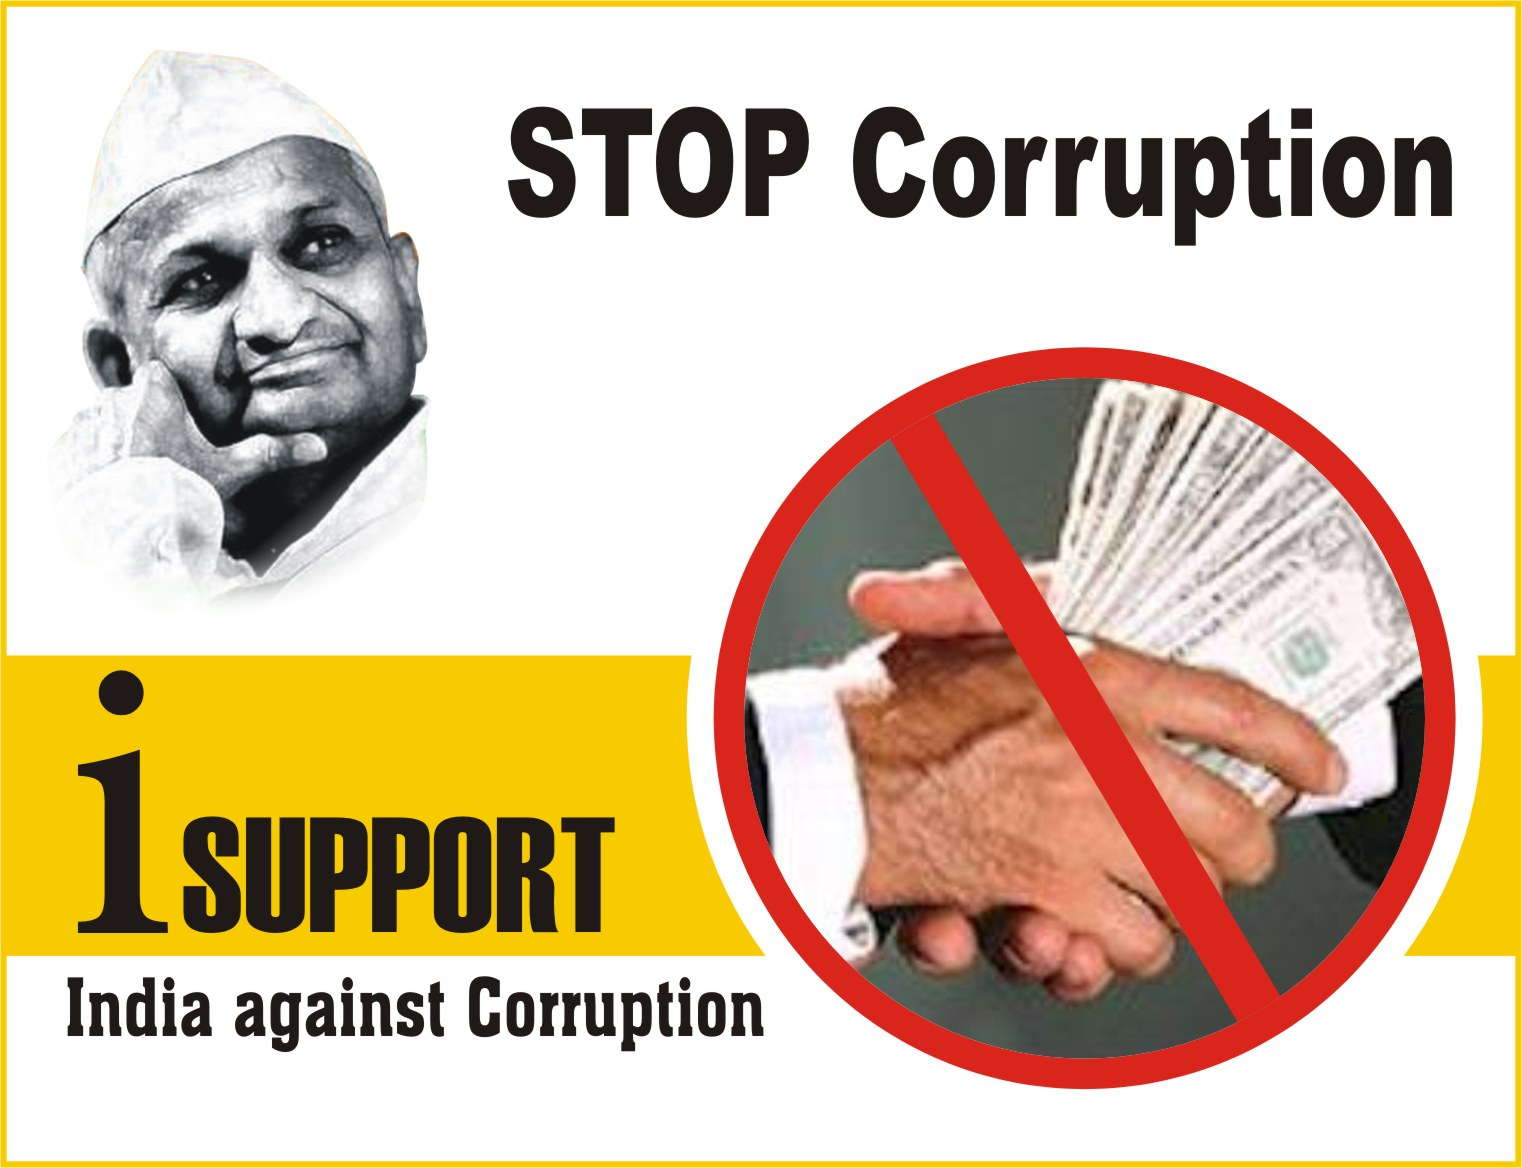 corruption in india and ways to Another way you can fight corruption in people is by fighting the corruption that is within you, first if anyone fight the insider corruption, he / she will be strong enough to fight against the outsider corruption.